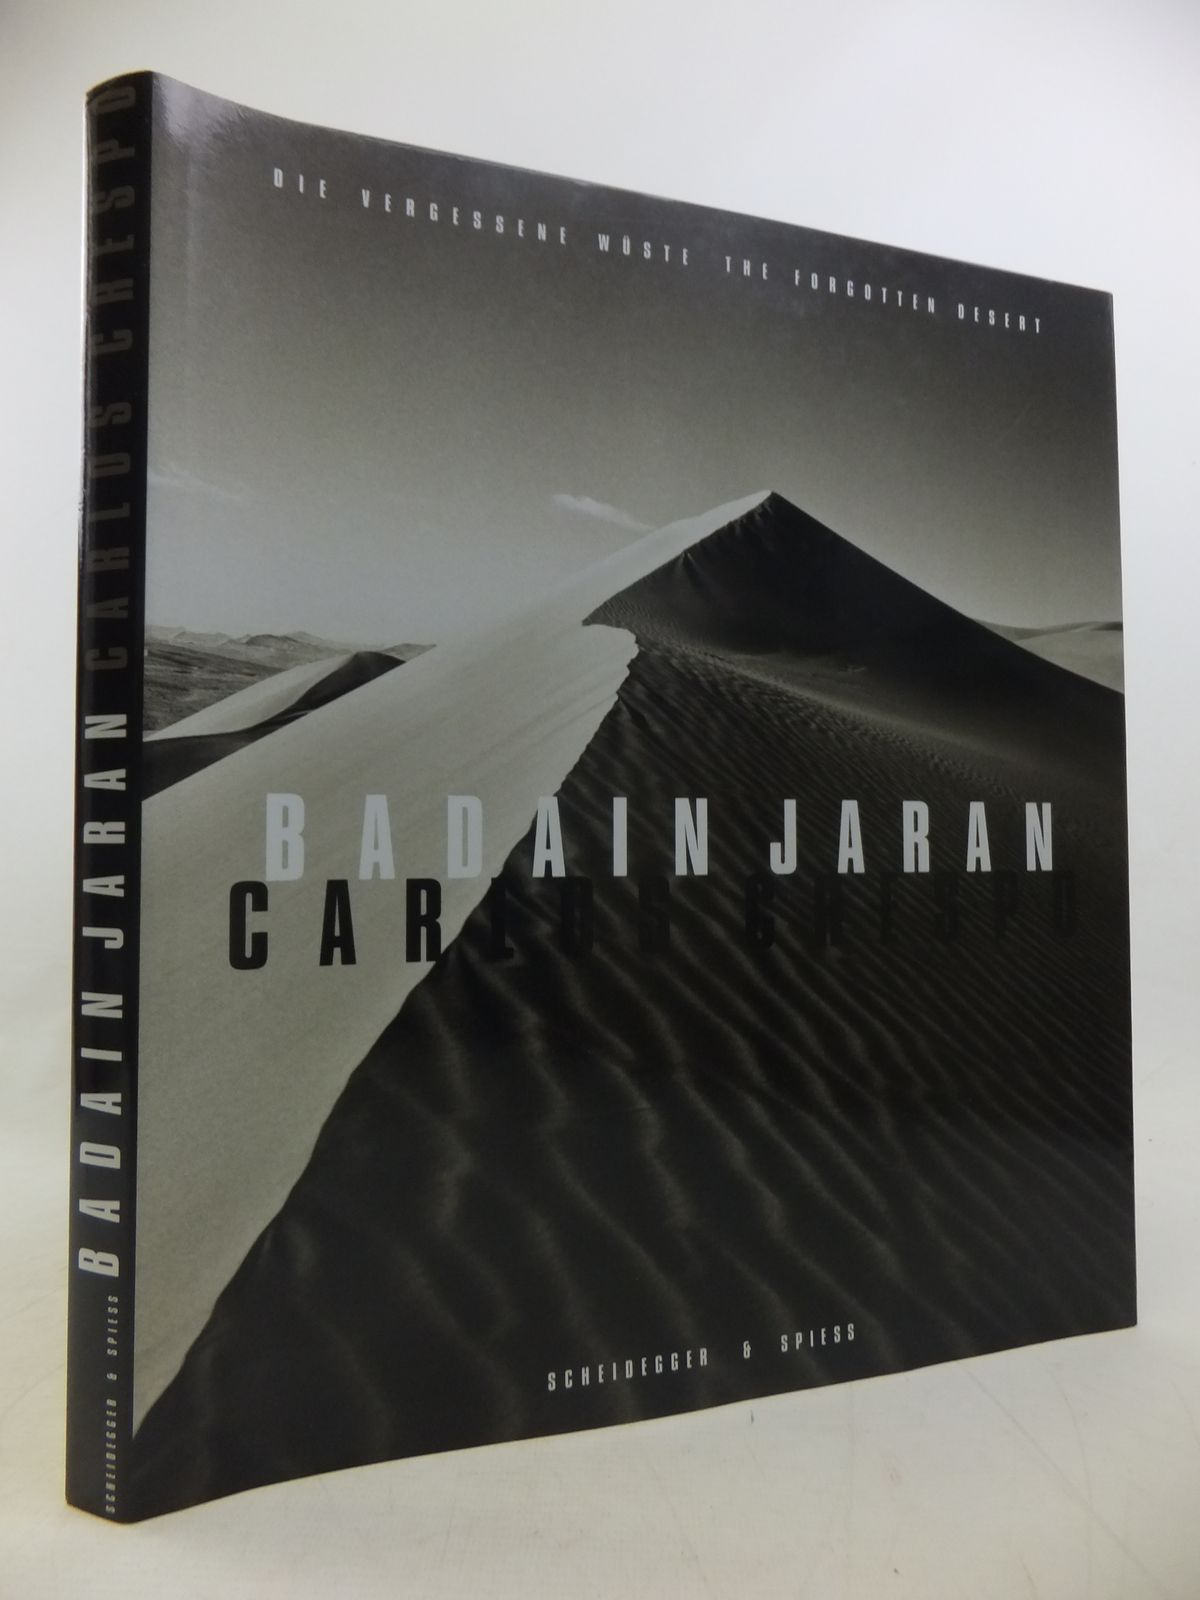 Photo of BADAIN JARAN: THE FORGOTTEN DESERT: DIE VERGESSENE WUSTE written by Hug, Catherine<br />Kouwenhoven, Bill illustrated by Crespo, Luis Fresnocarlos published by Scheidegger &amp; Spiess (STOCK CODE: 1811246)  for sale by Stella & Rose's Books